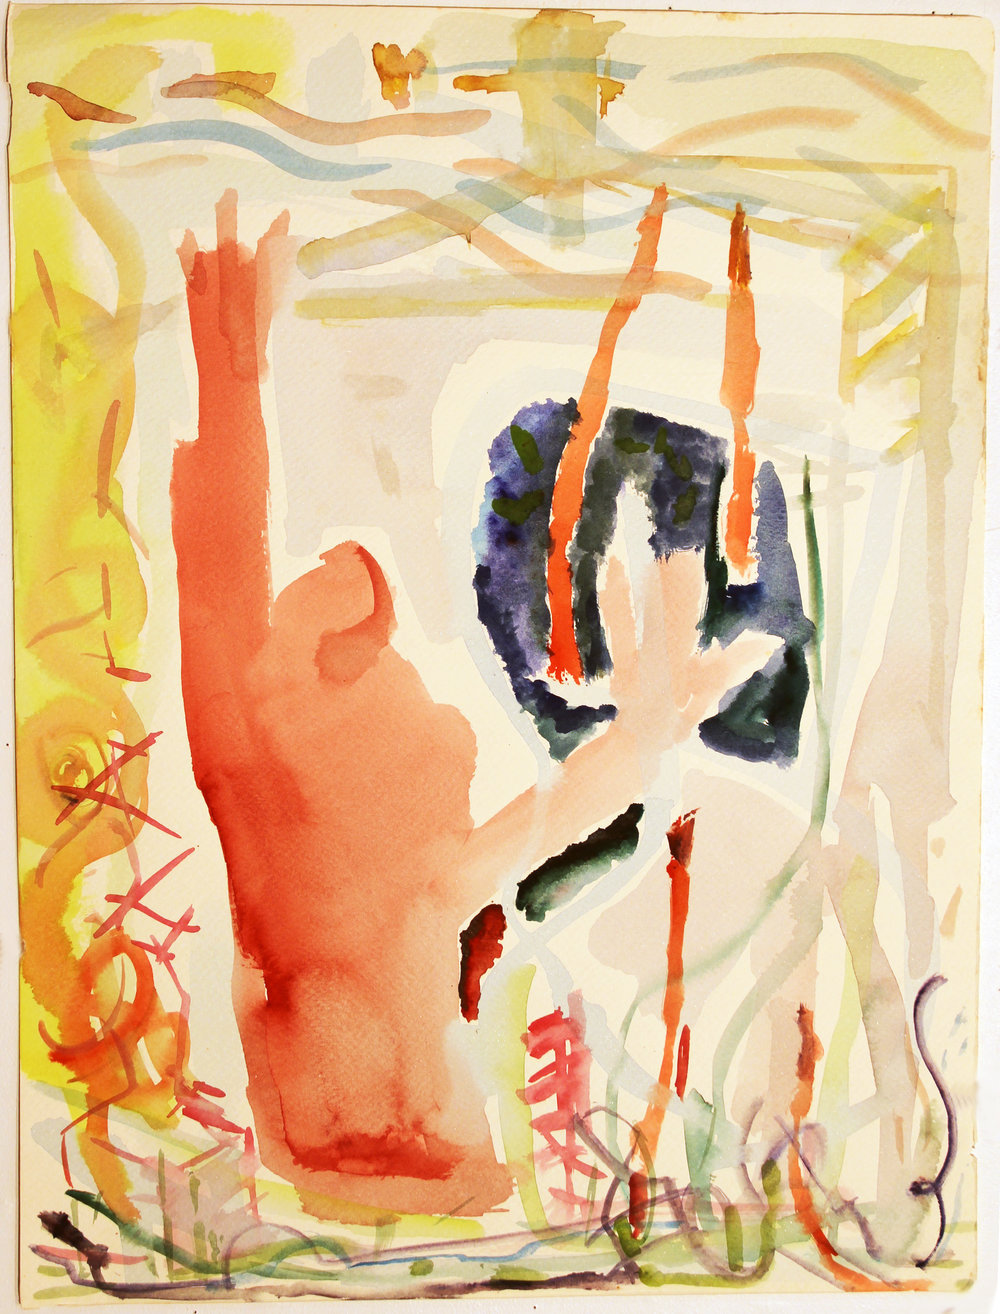 TAKE MY HAND Watercolor on Paper 20 x 15 inches (51 x 38 cm)